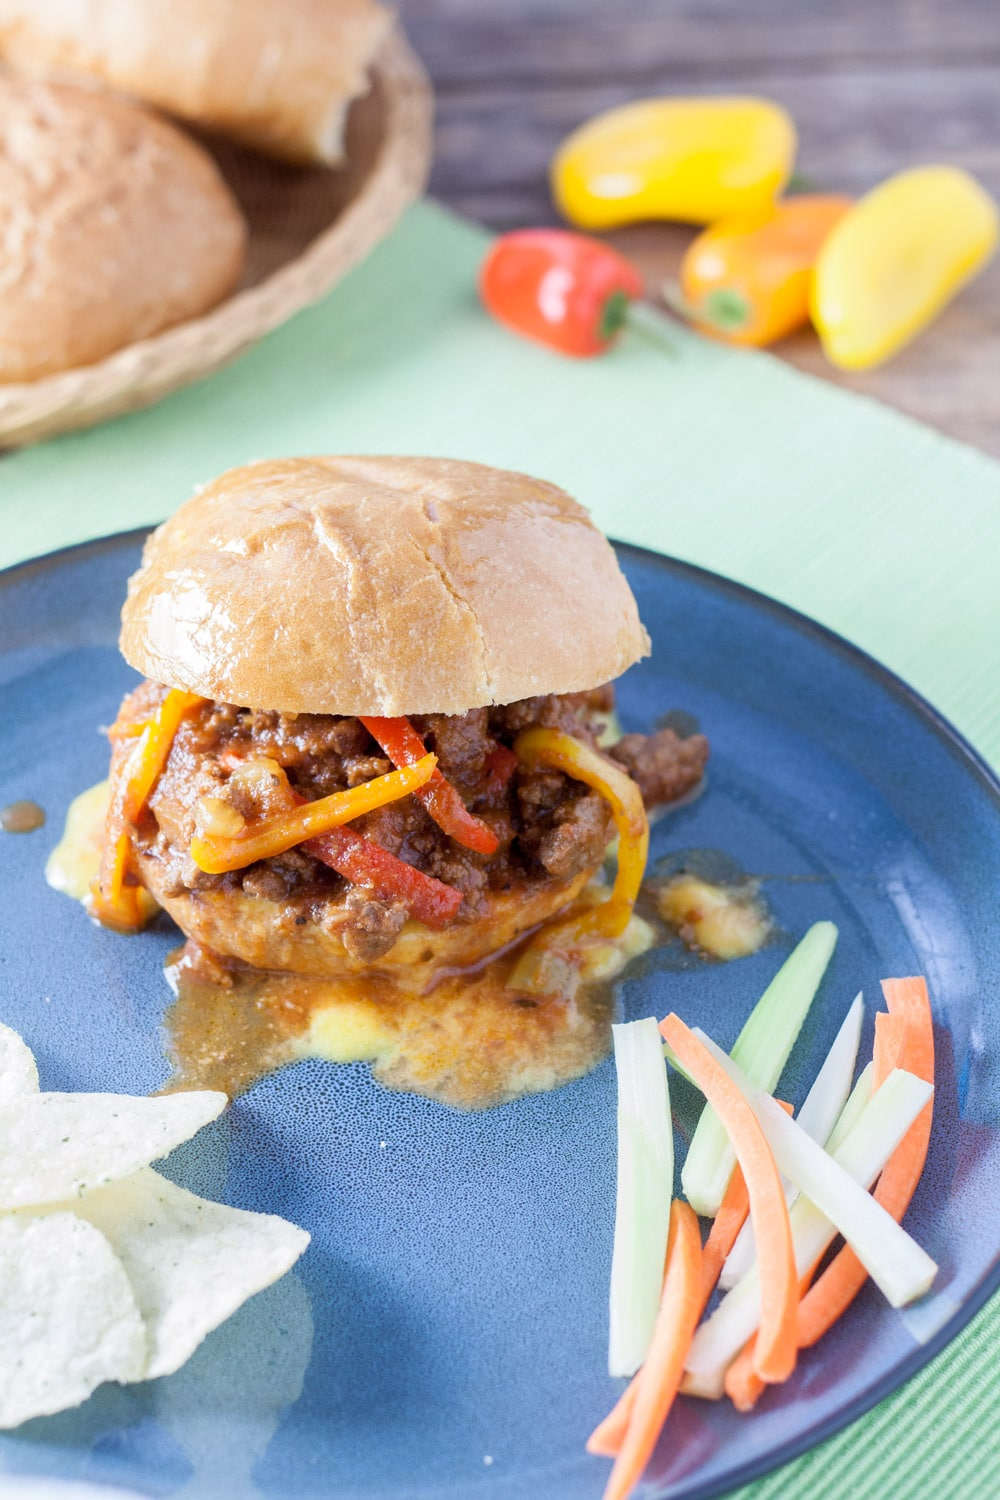 sloppy joes sandwich on blue plate with carrots, celery and chips